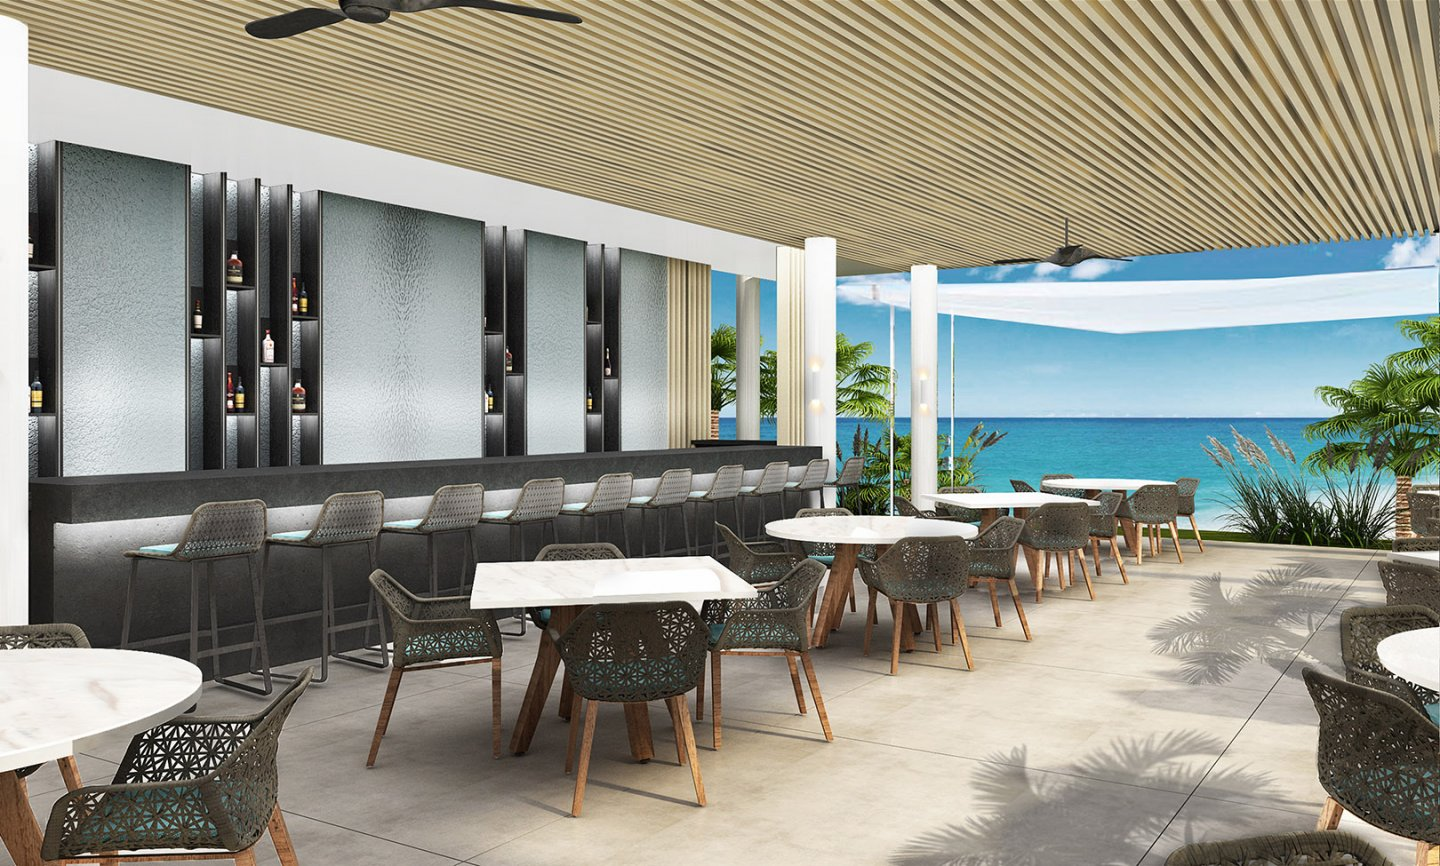 Silversands Beach Bar - project overview image